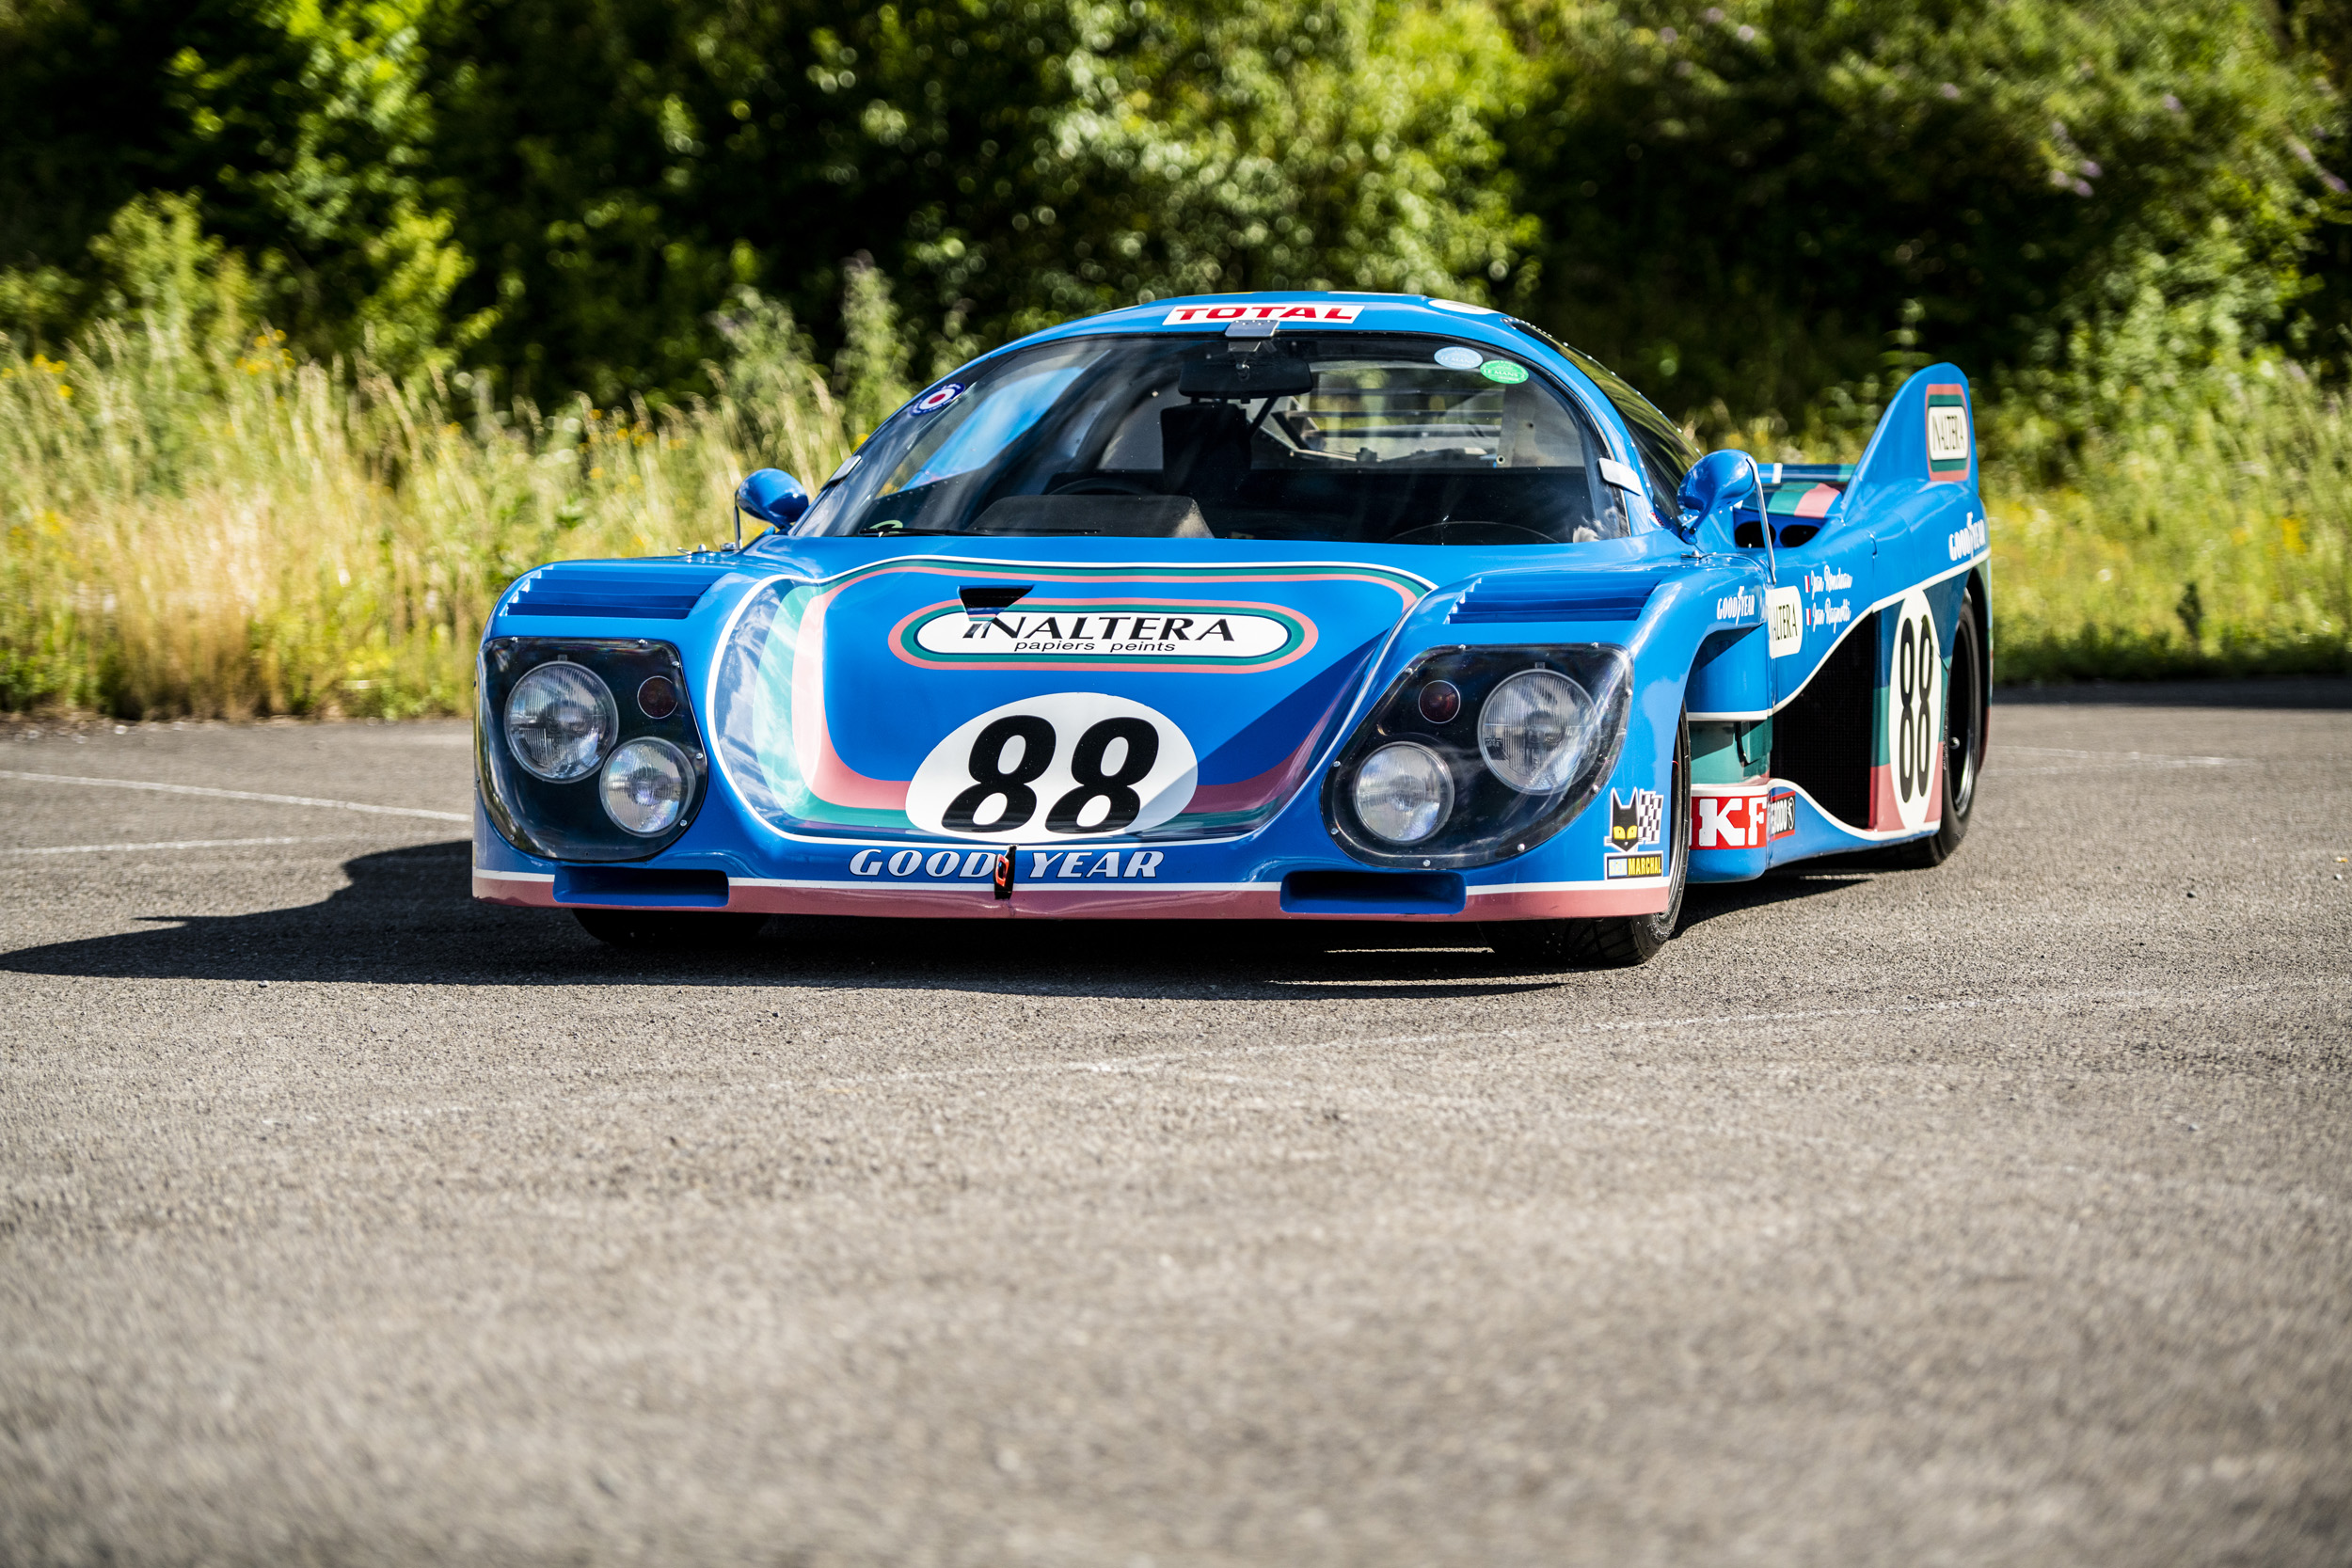 200702 1976 Inaltera GTP-Cosworth- Remi Dargegen ©2020 Courtesy of RM Sotheby's